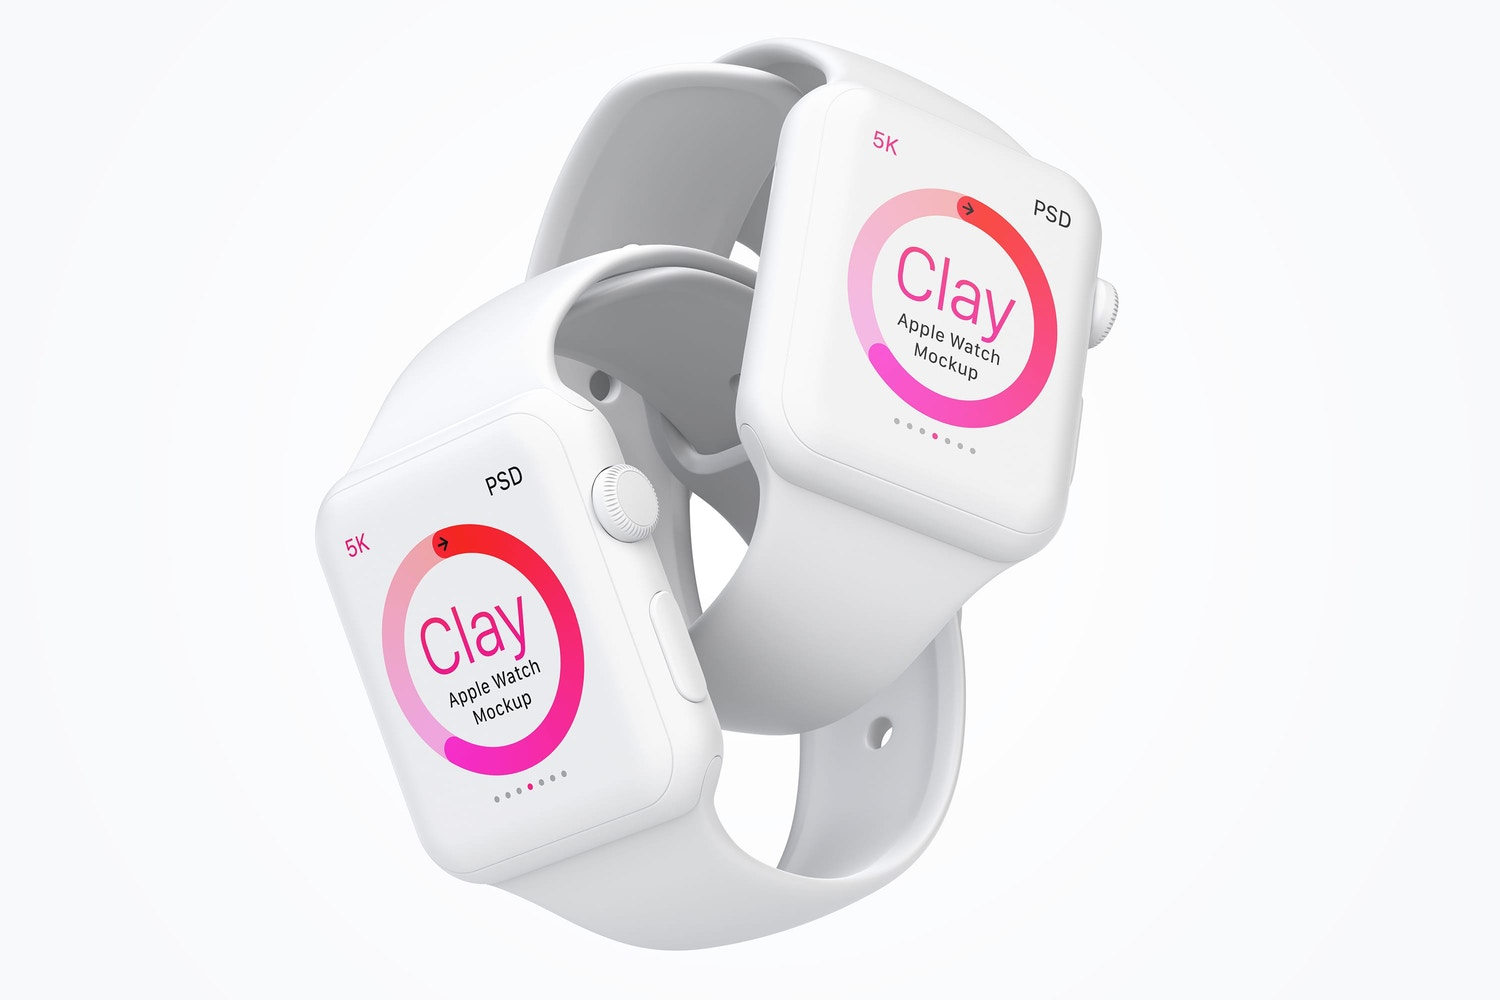 Clay Apple Watch Mockup 07 by Original Mockups on Original Mockups